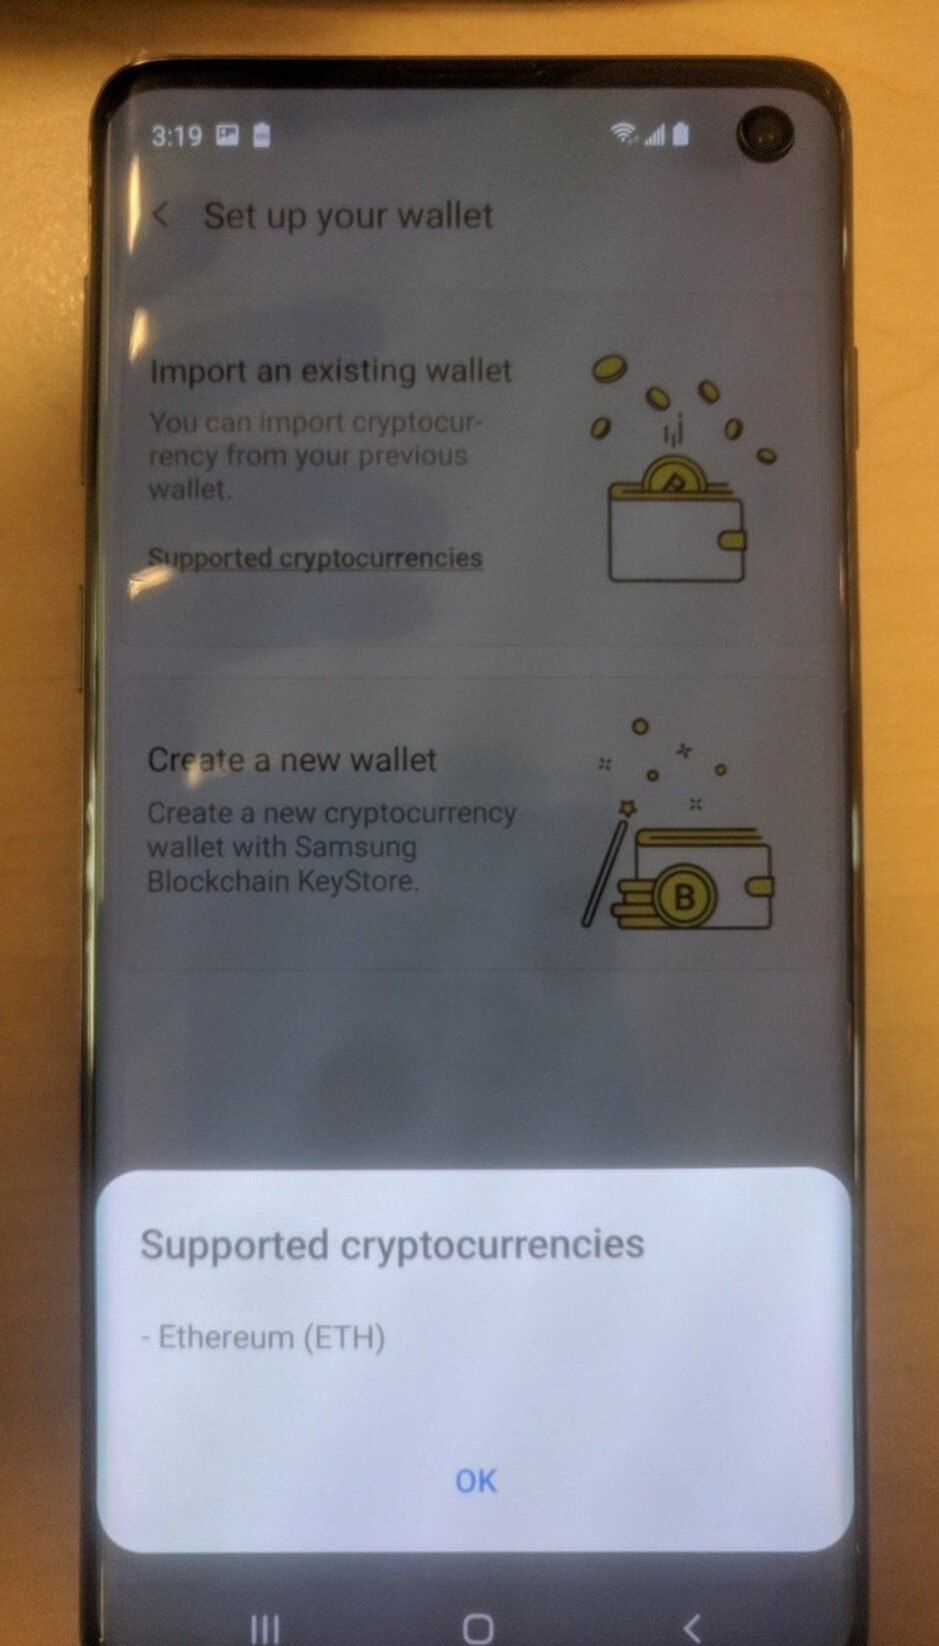 Samsung tipped to launch cryptocurrency wallet system with Galaxy S10